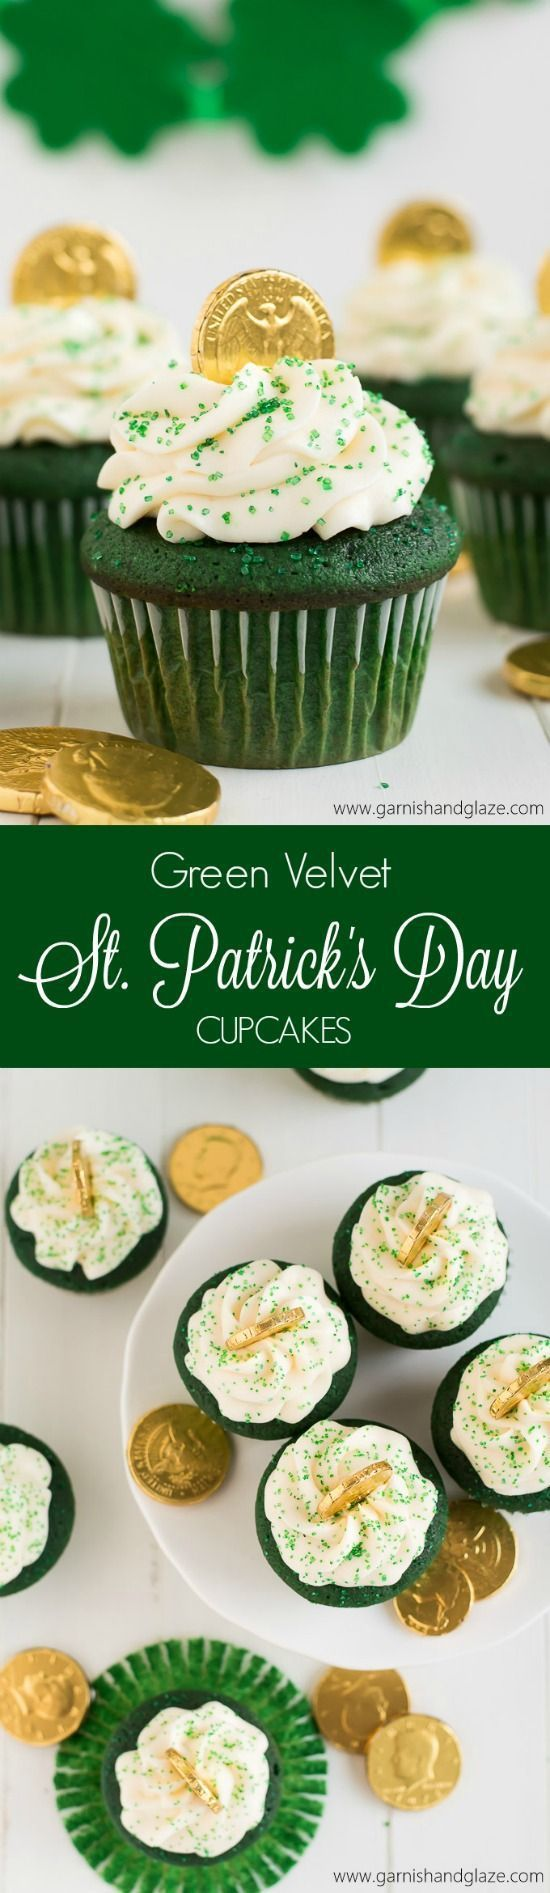 Get in the St. Patrick's Day Spirit with these yummy Green Velvet St. Patrick's Day Cupcakes topped with Cream Cheese Frosting!